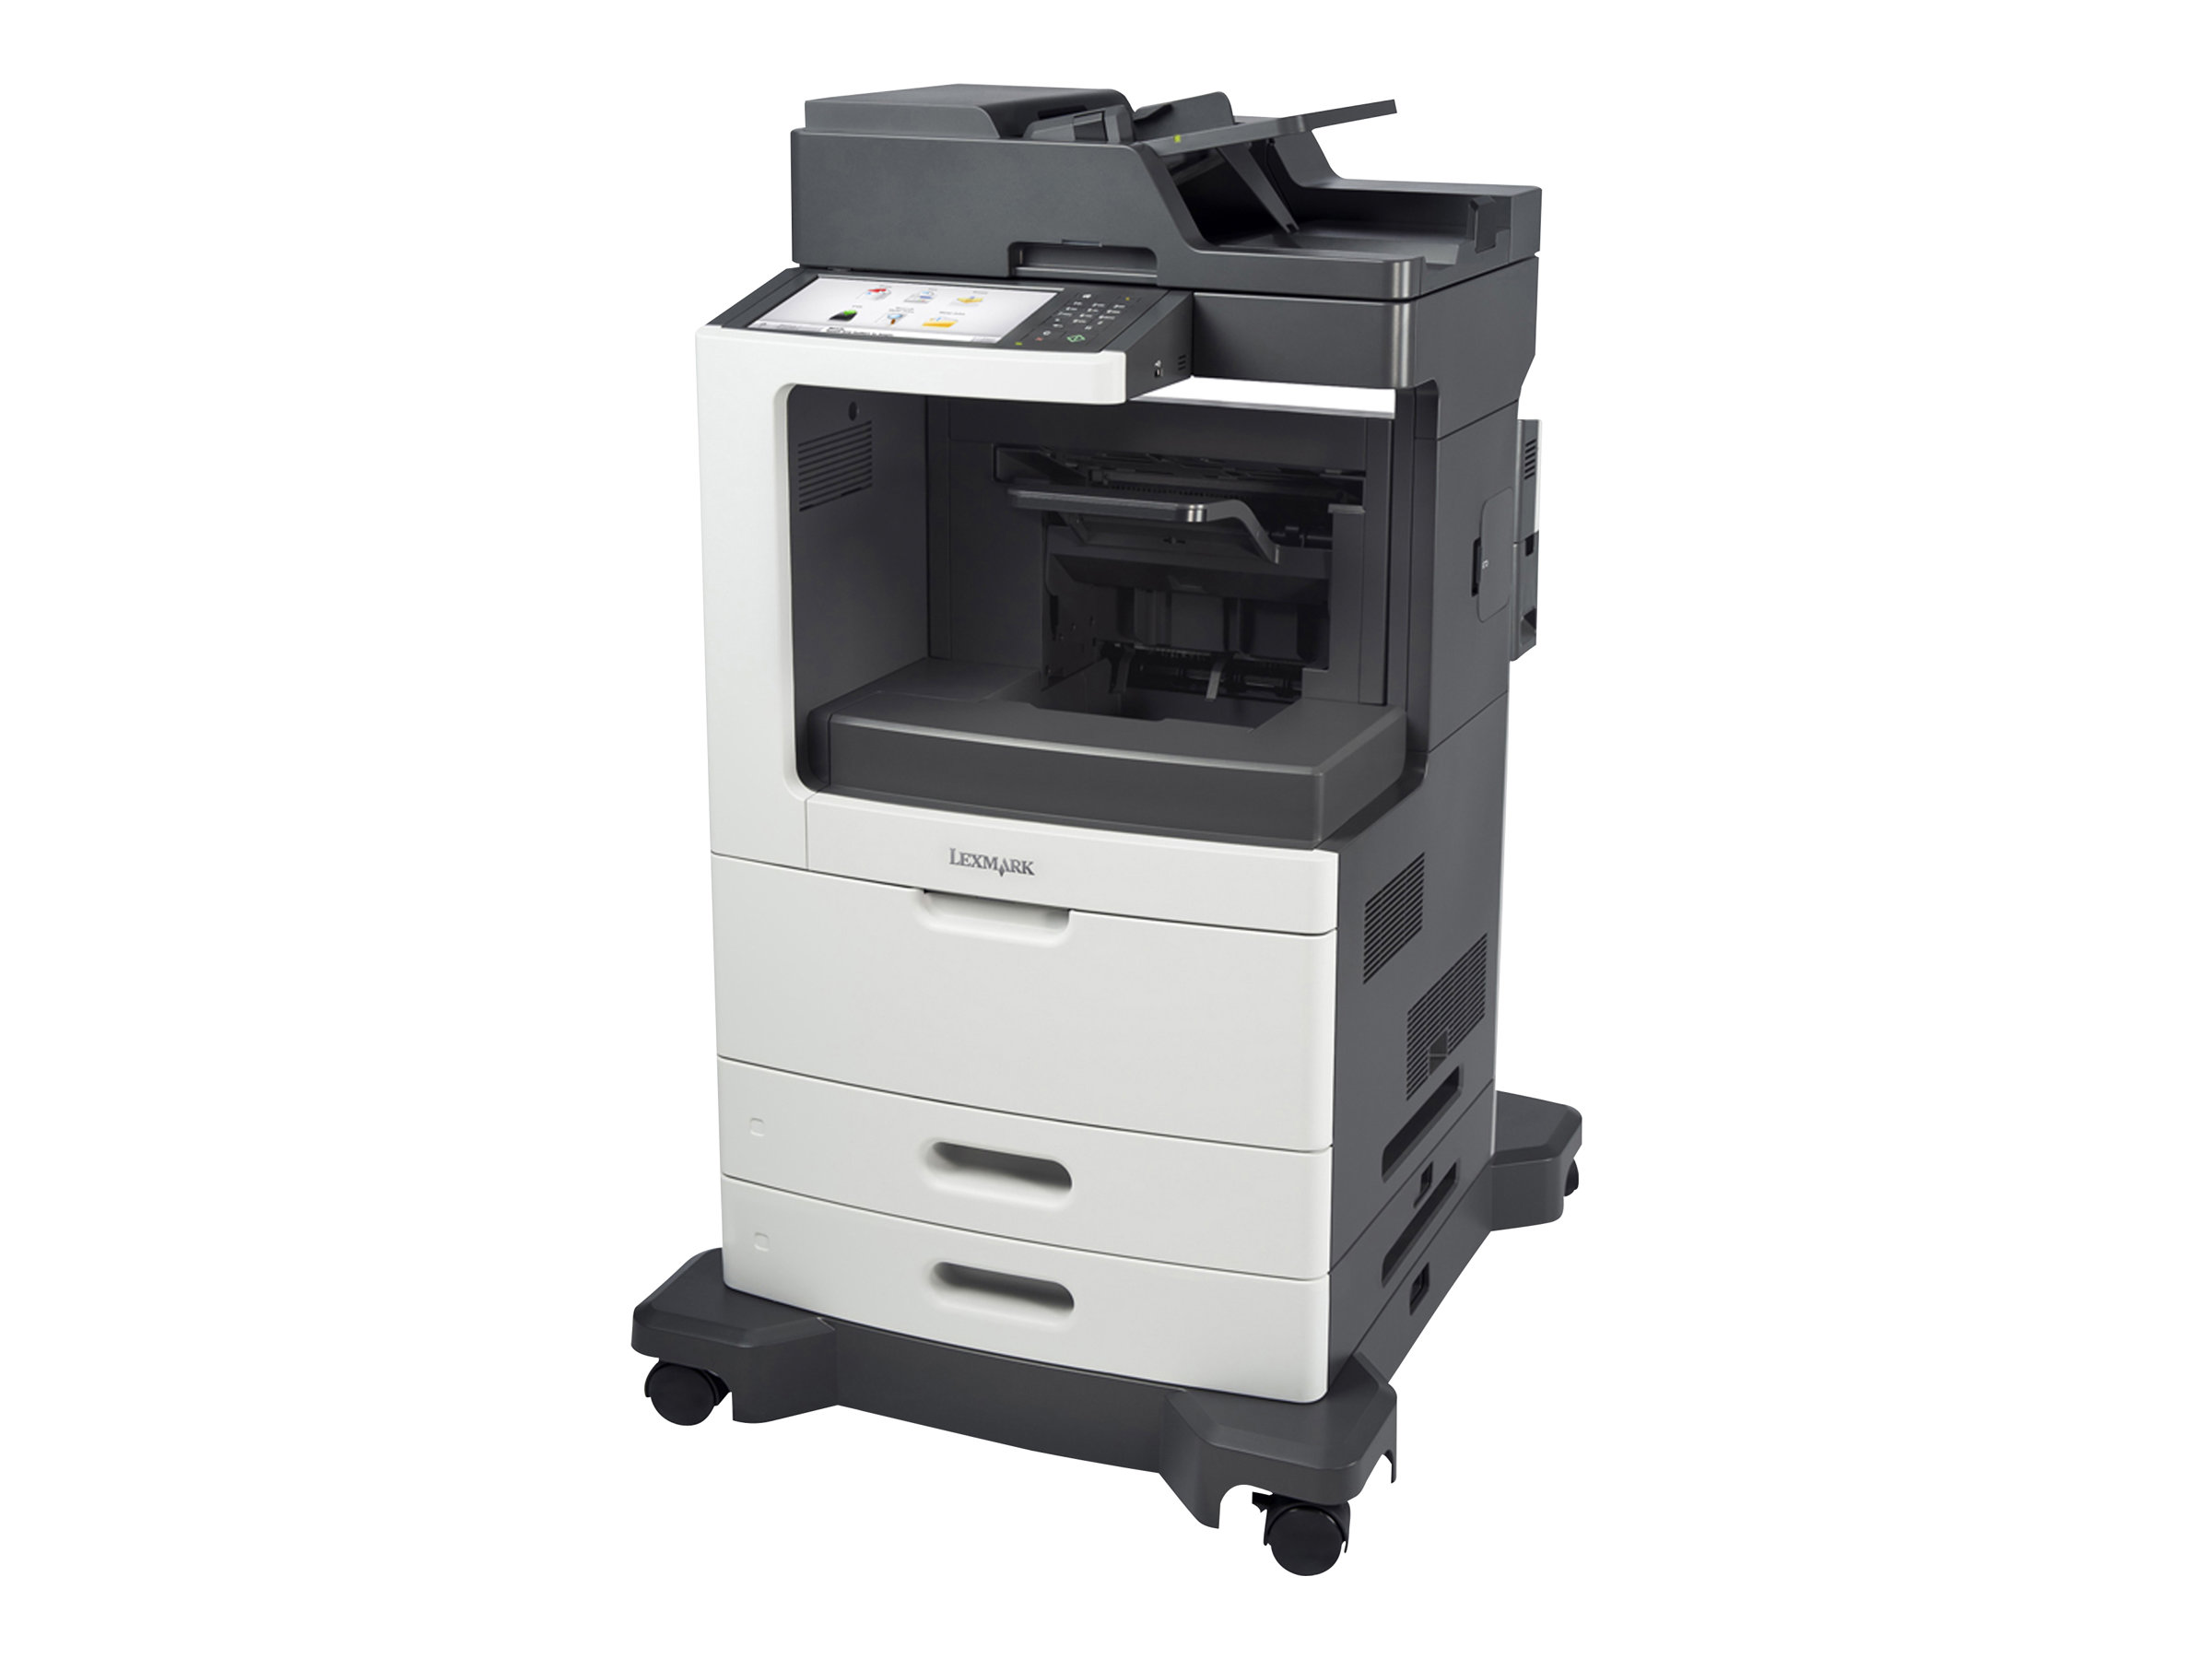 Lexmark MX810dfe - Multifunktionsdrucker - s/w - Laser - Legal (216 x 356 mm) (Original) - Legal (Medien)